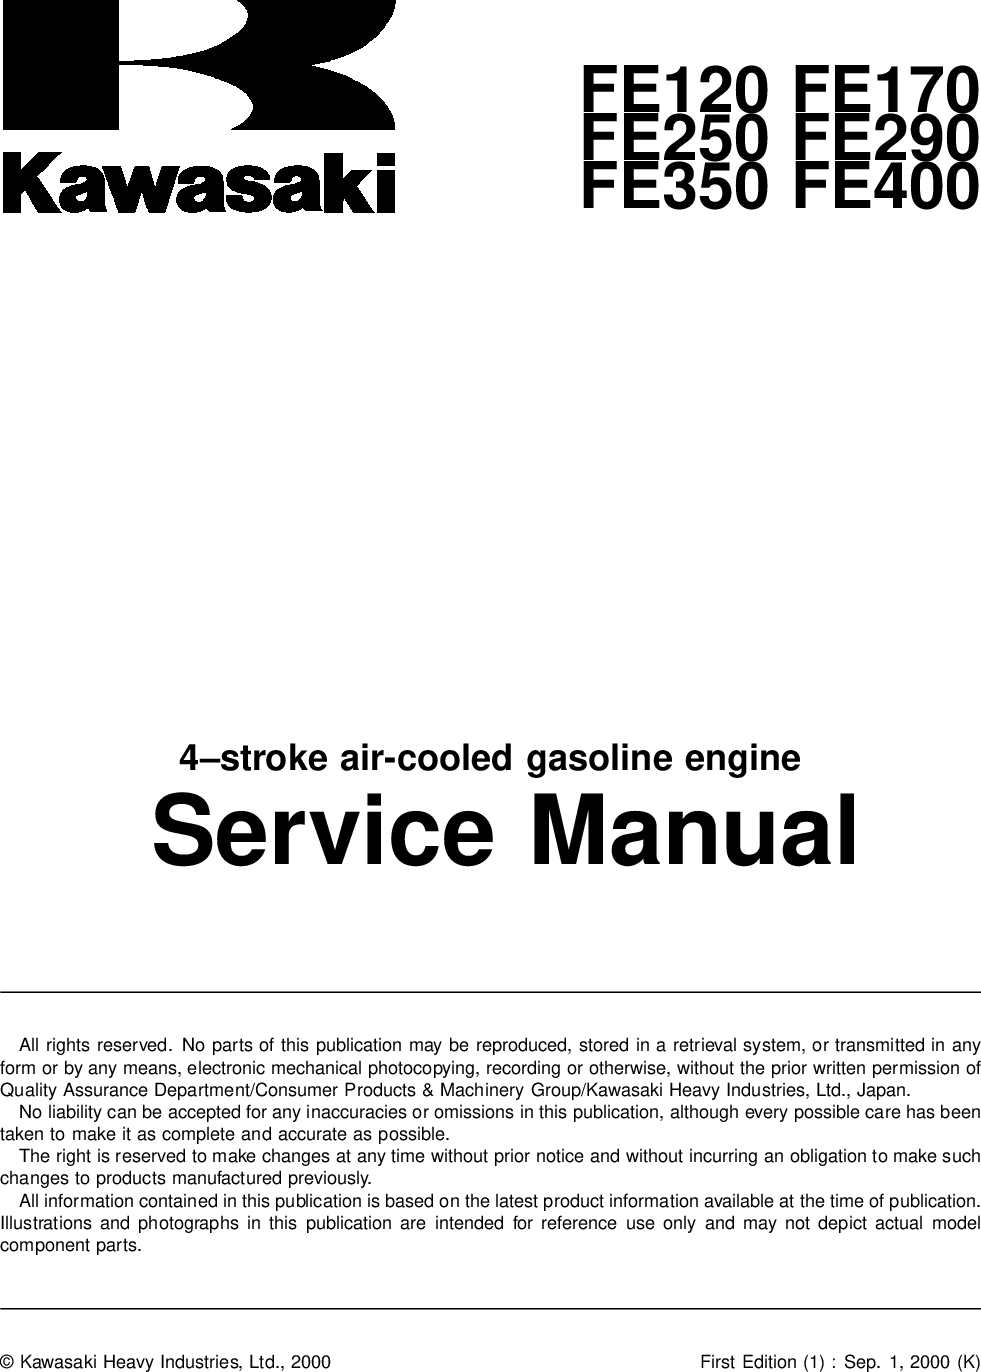 Kawasaki FE290 User Manual To The E7933203 045b 4f54 b9ce